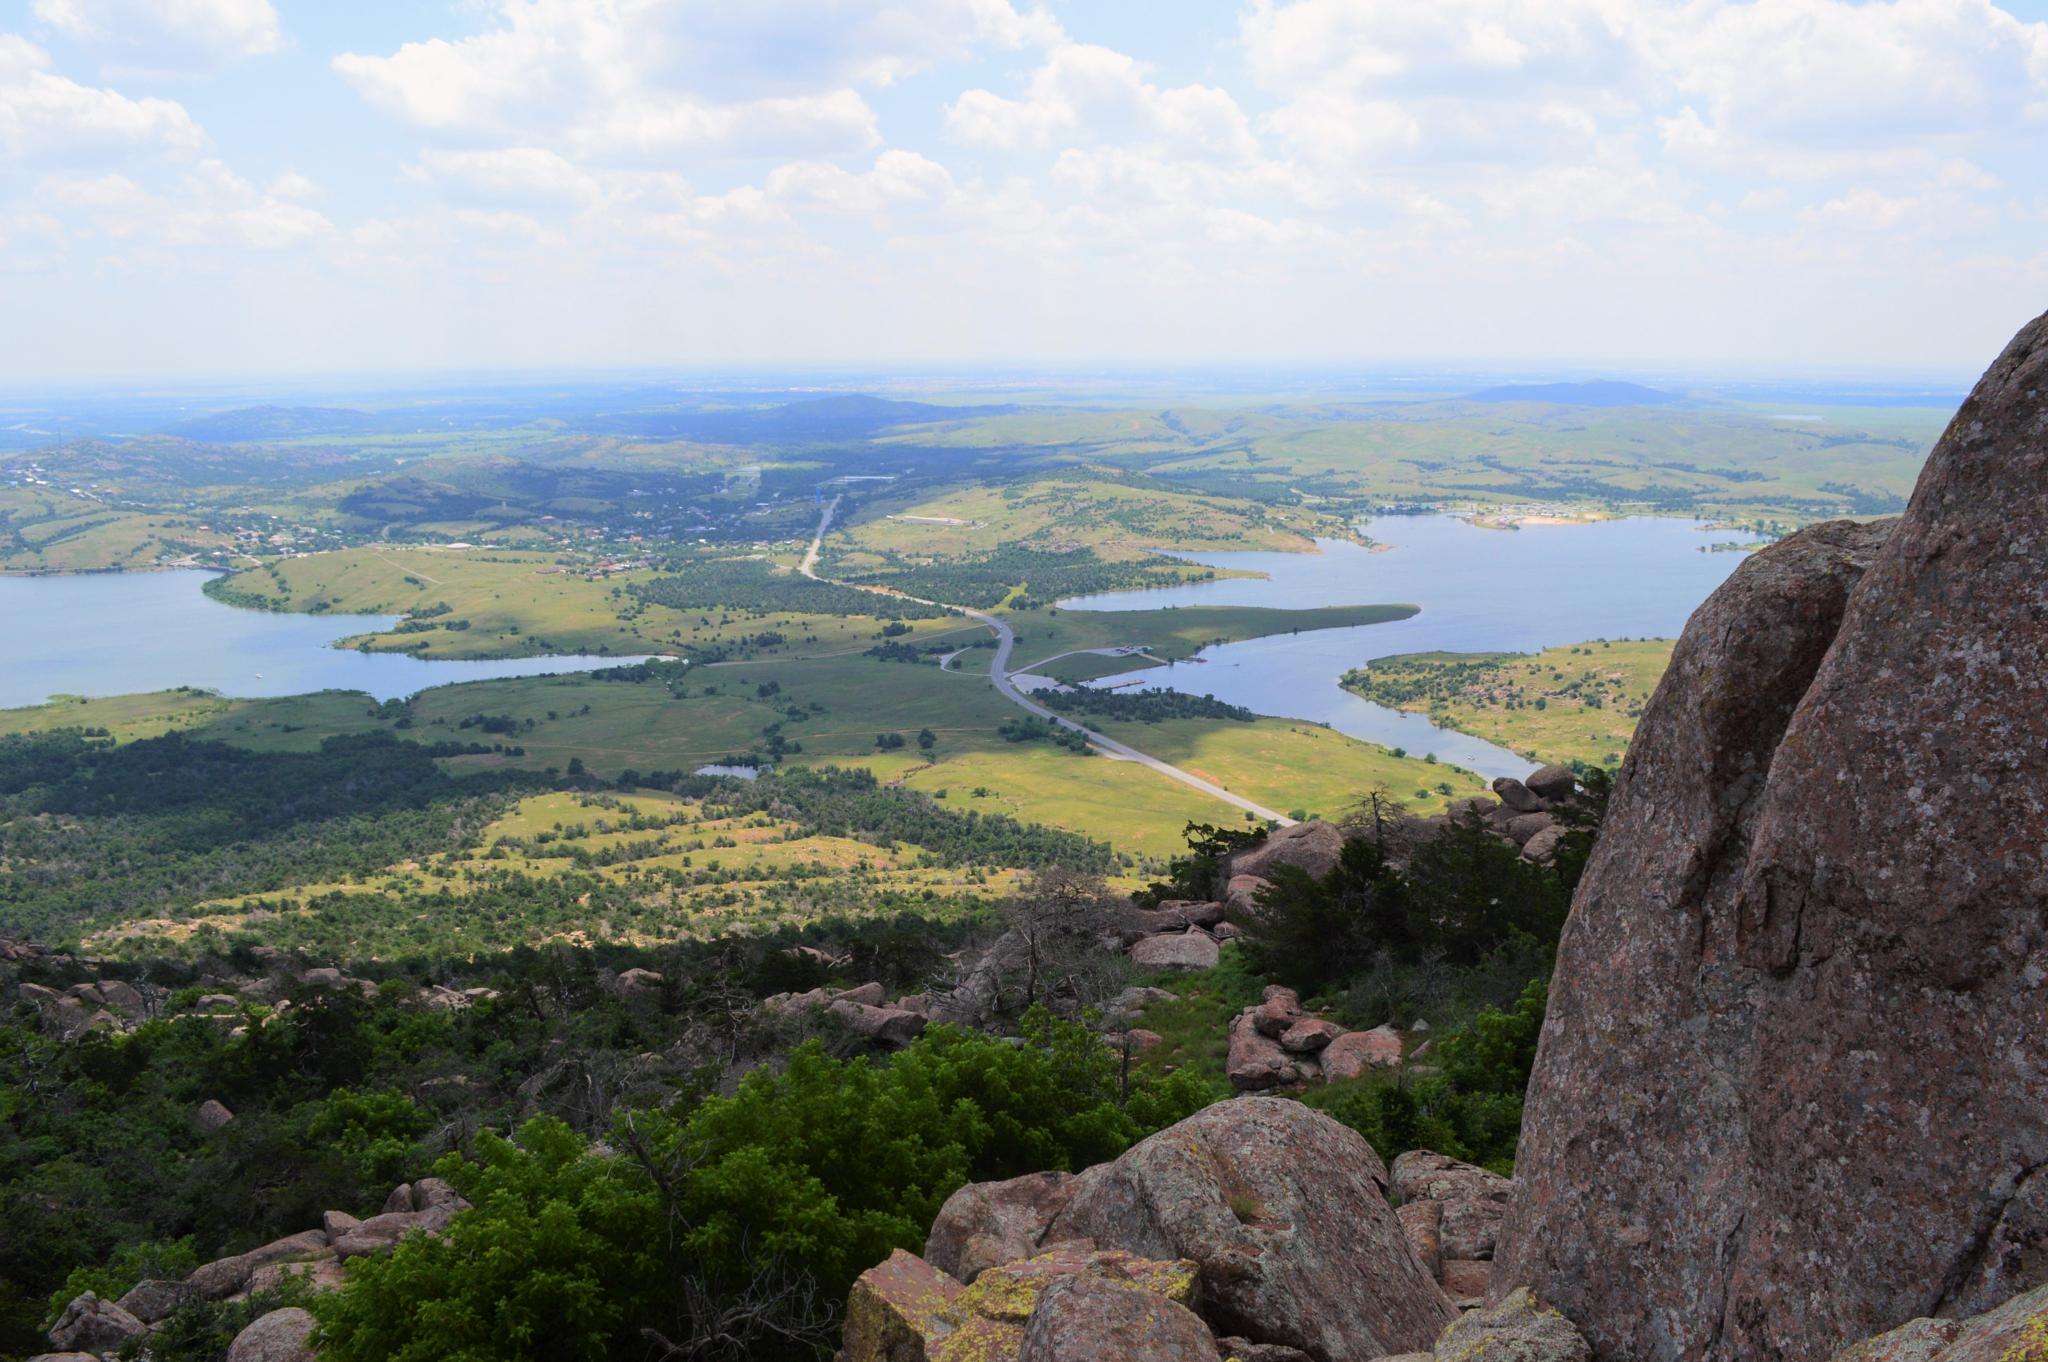 View from Mt Scott looking towards Lake Lawtonka by VickiB